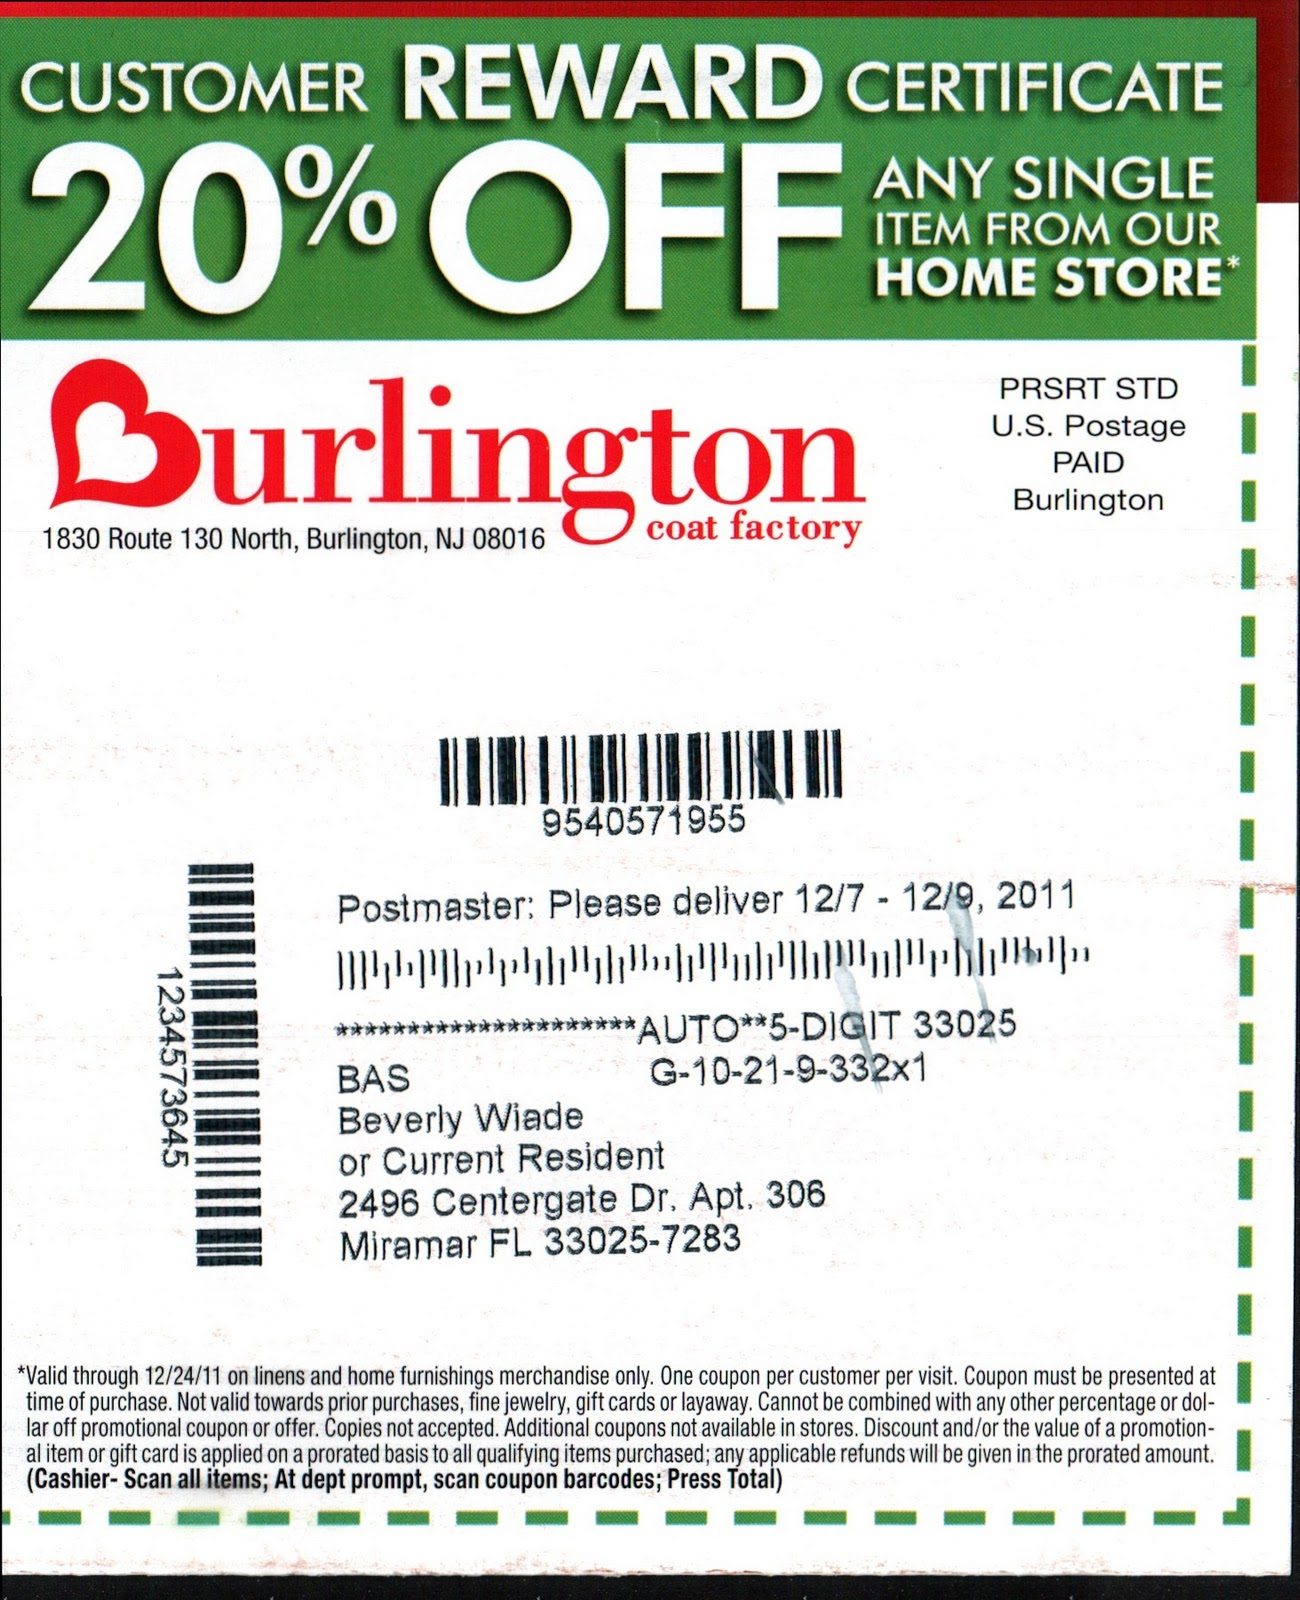 1a1118b5311 Burlington coat factory baby depot coupon codes - Staples coupon 73144